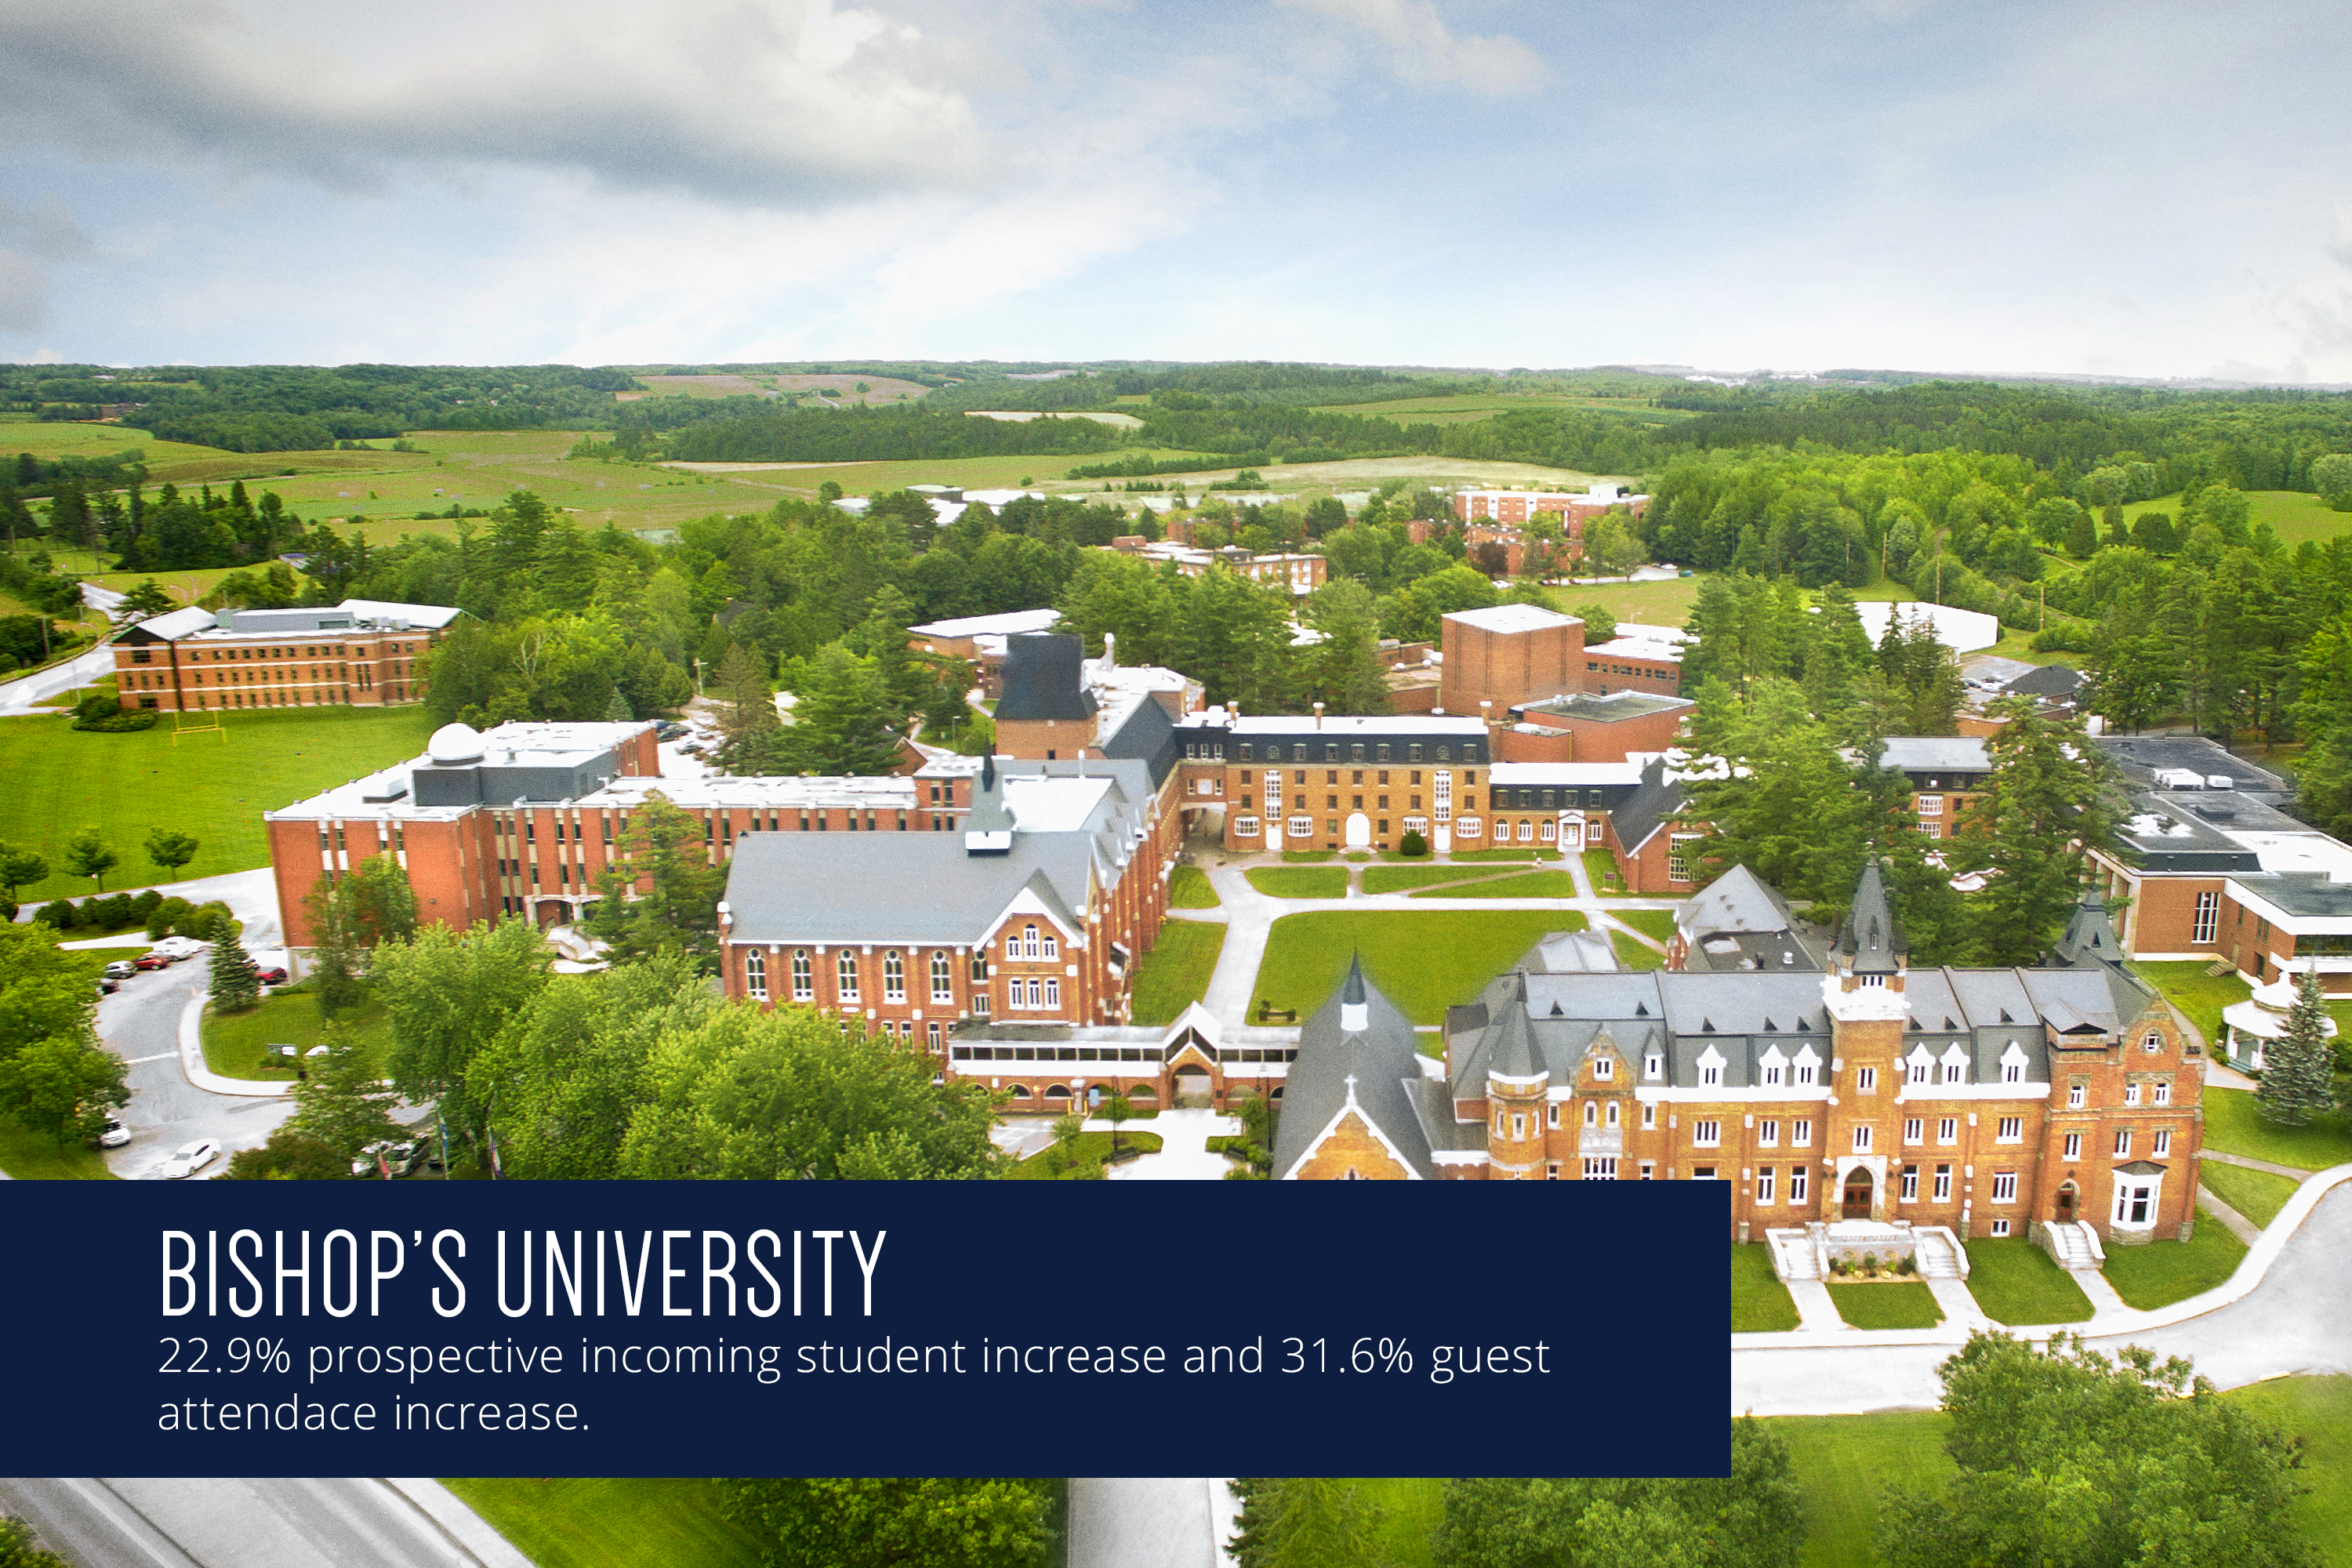 Bishop's University increases prospective student applications by 22.9%